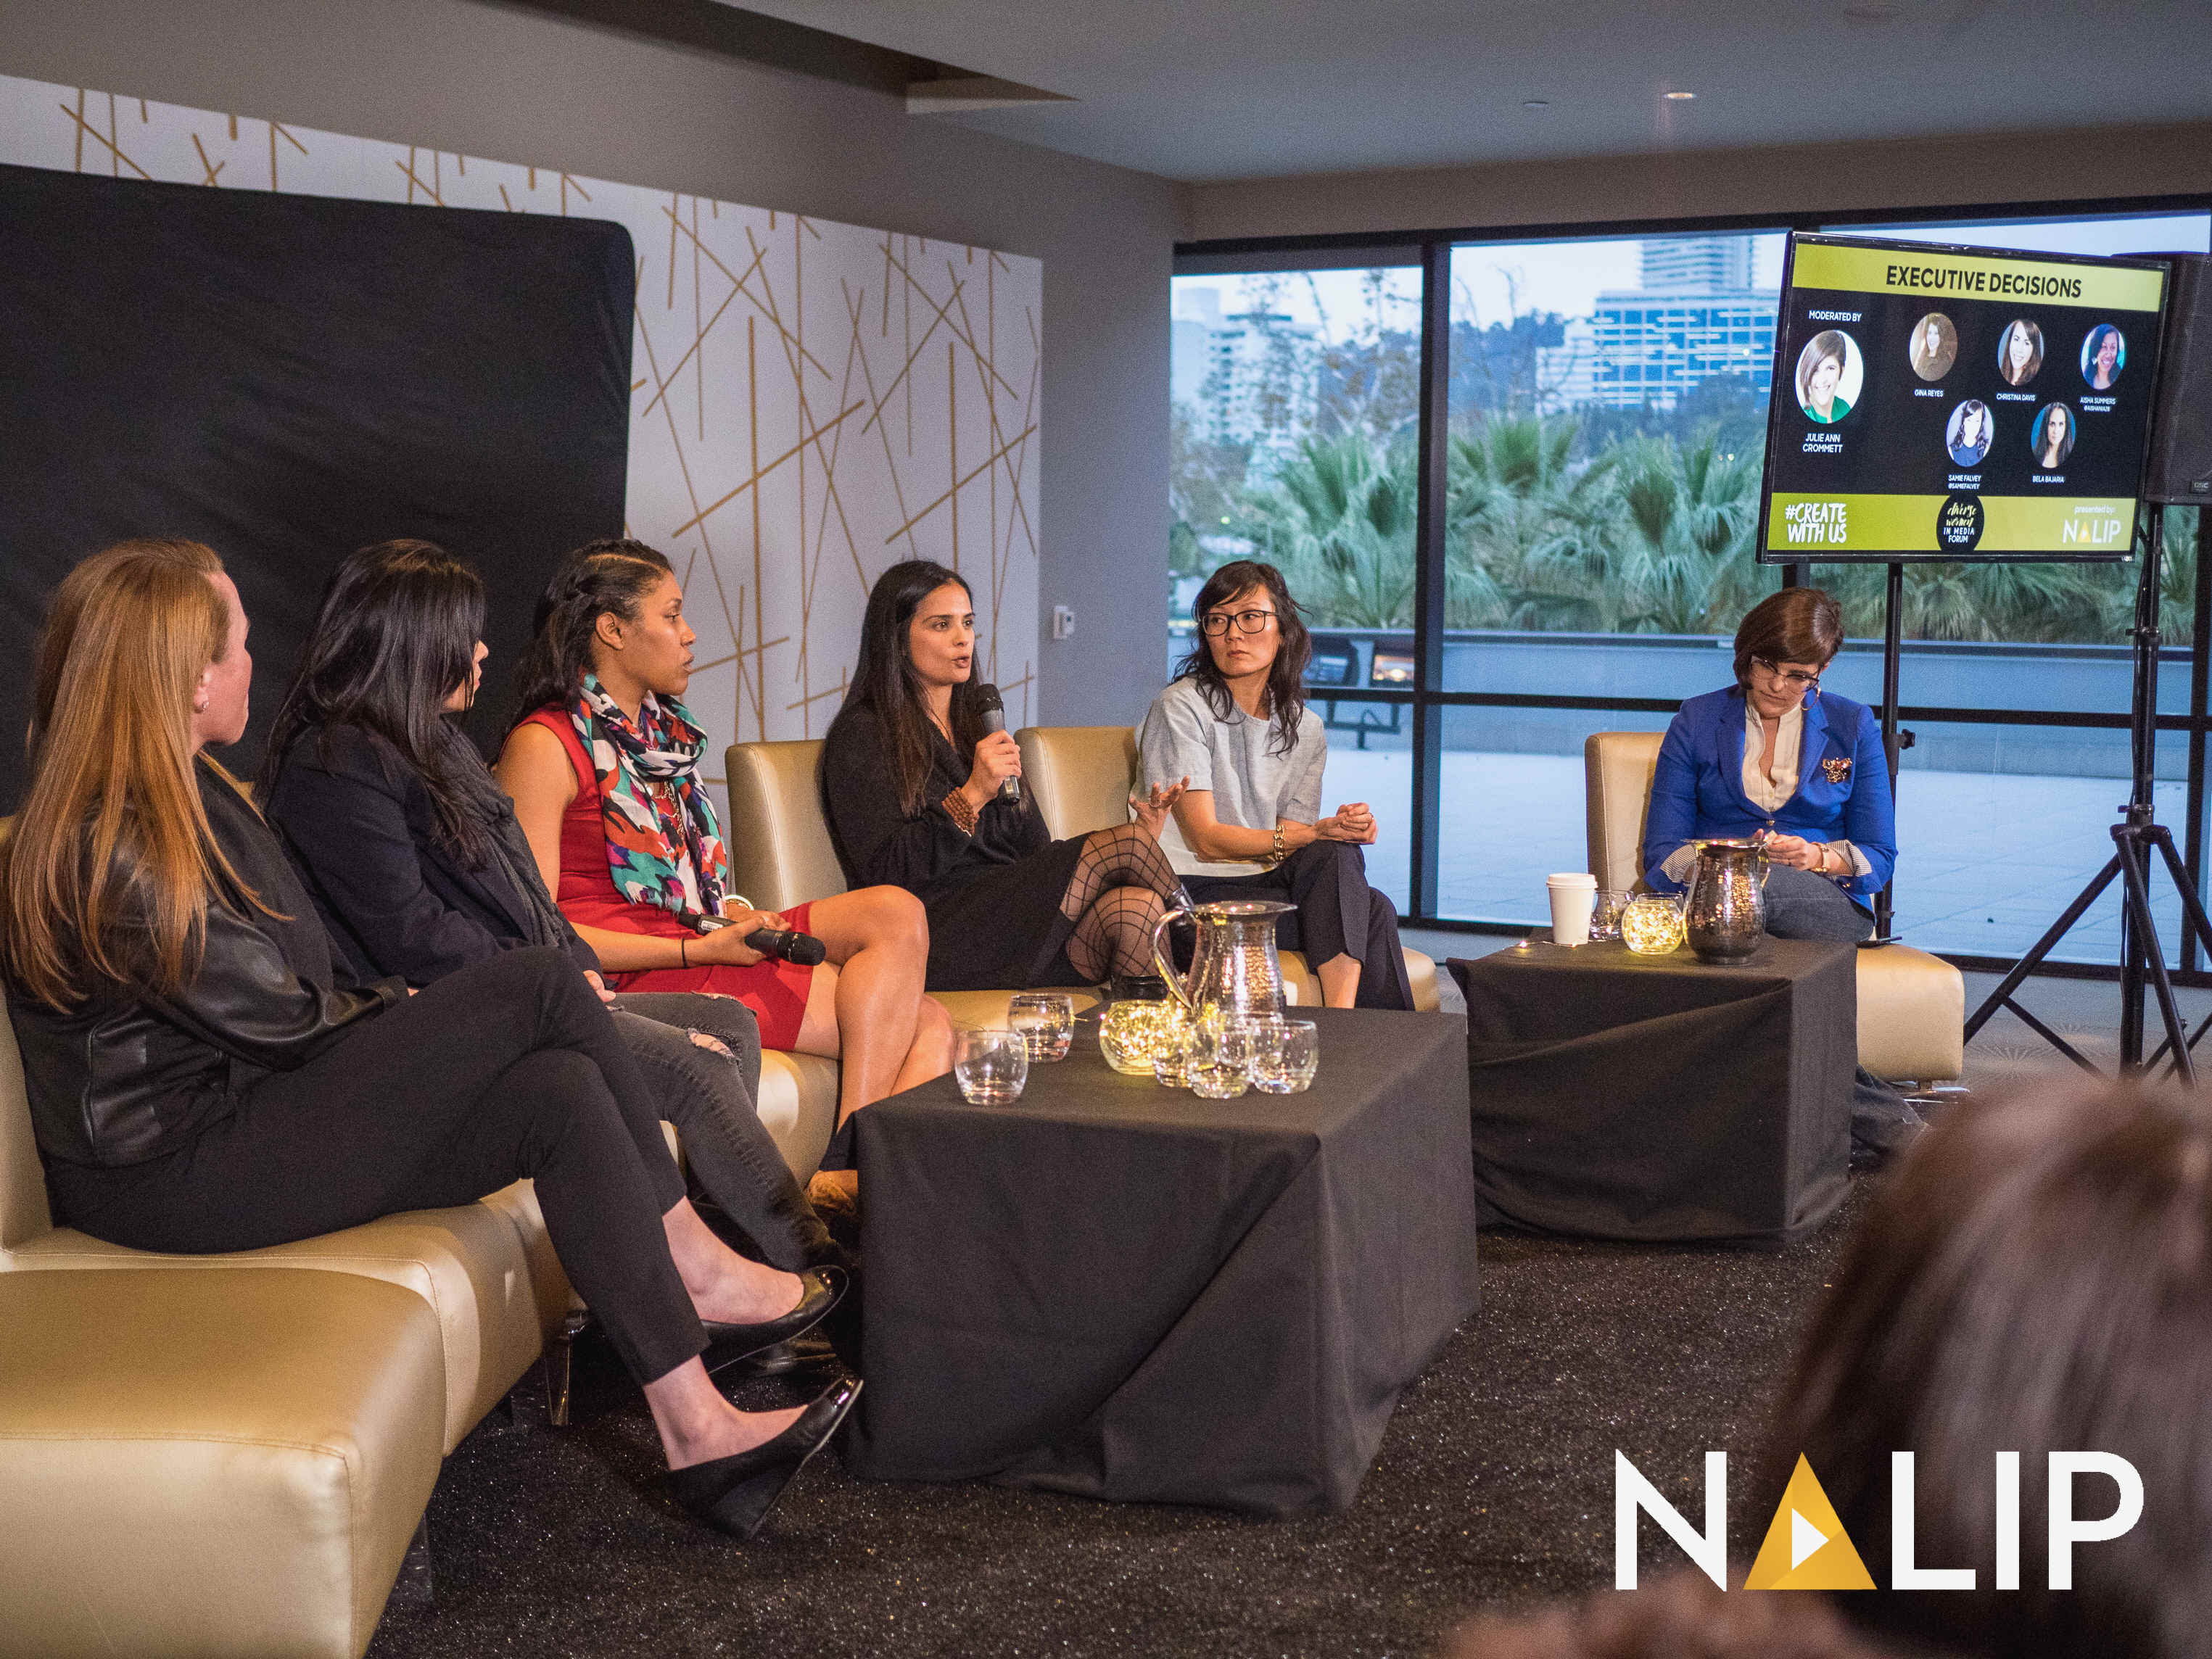 Somos primos the diverse women in media forum opened with the executive decisions a conversation with leading women it truly was held by leading women starting with fandeluxe Gallery